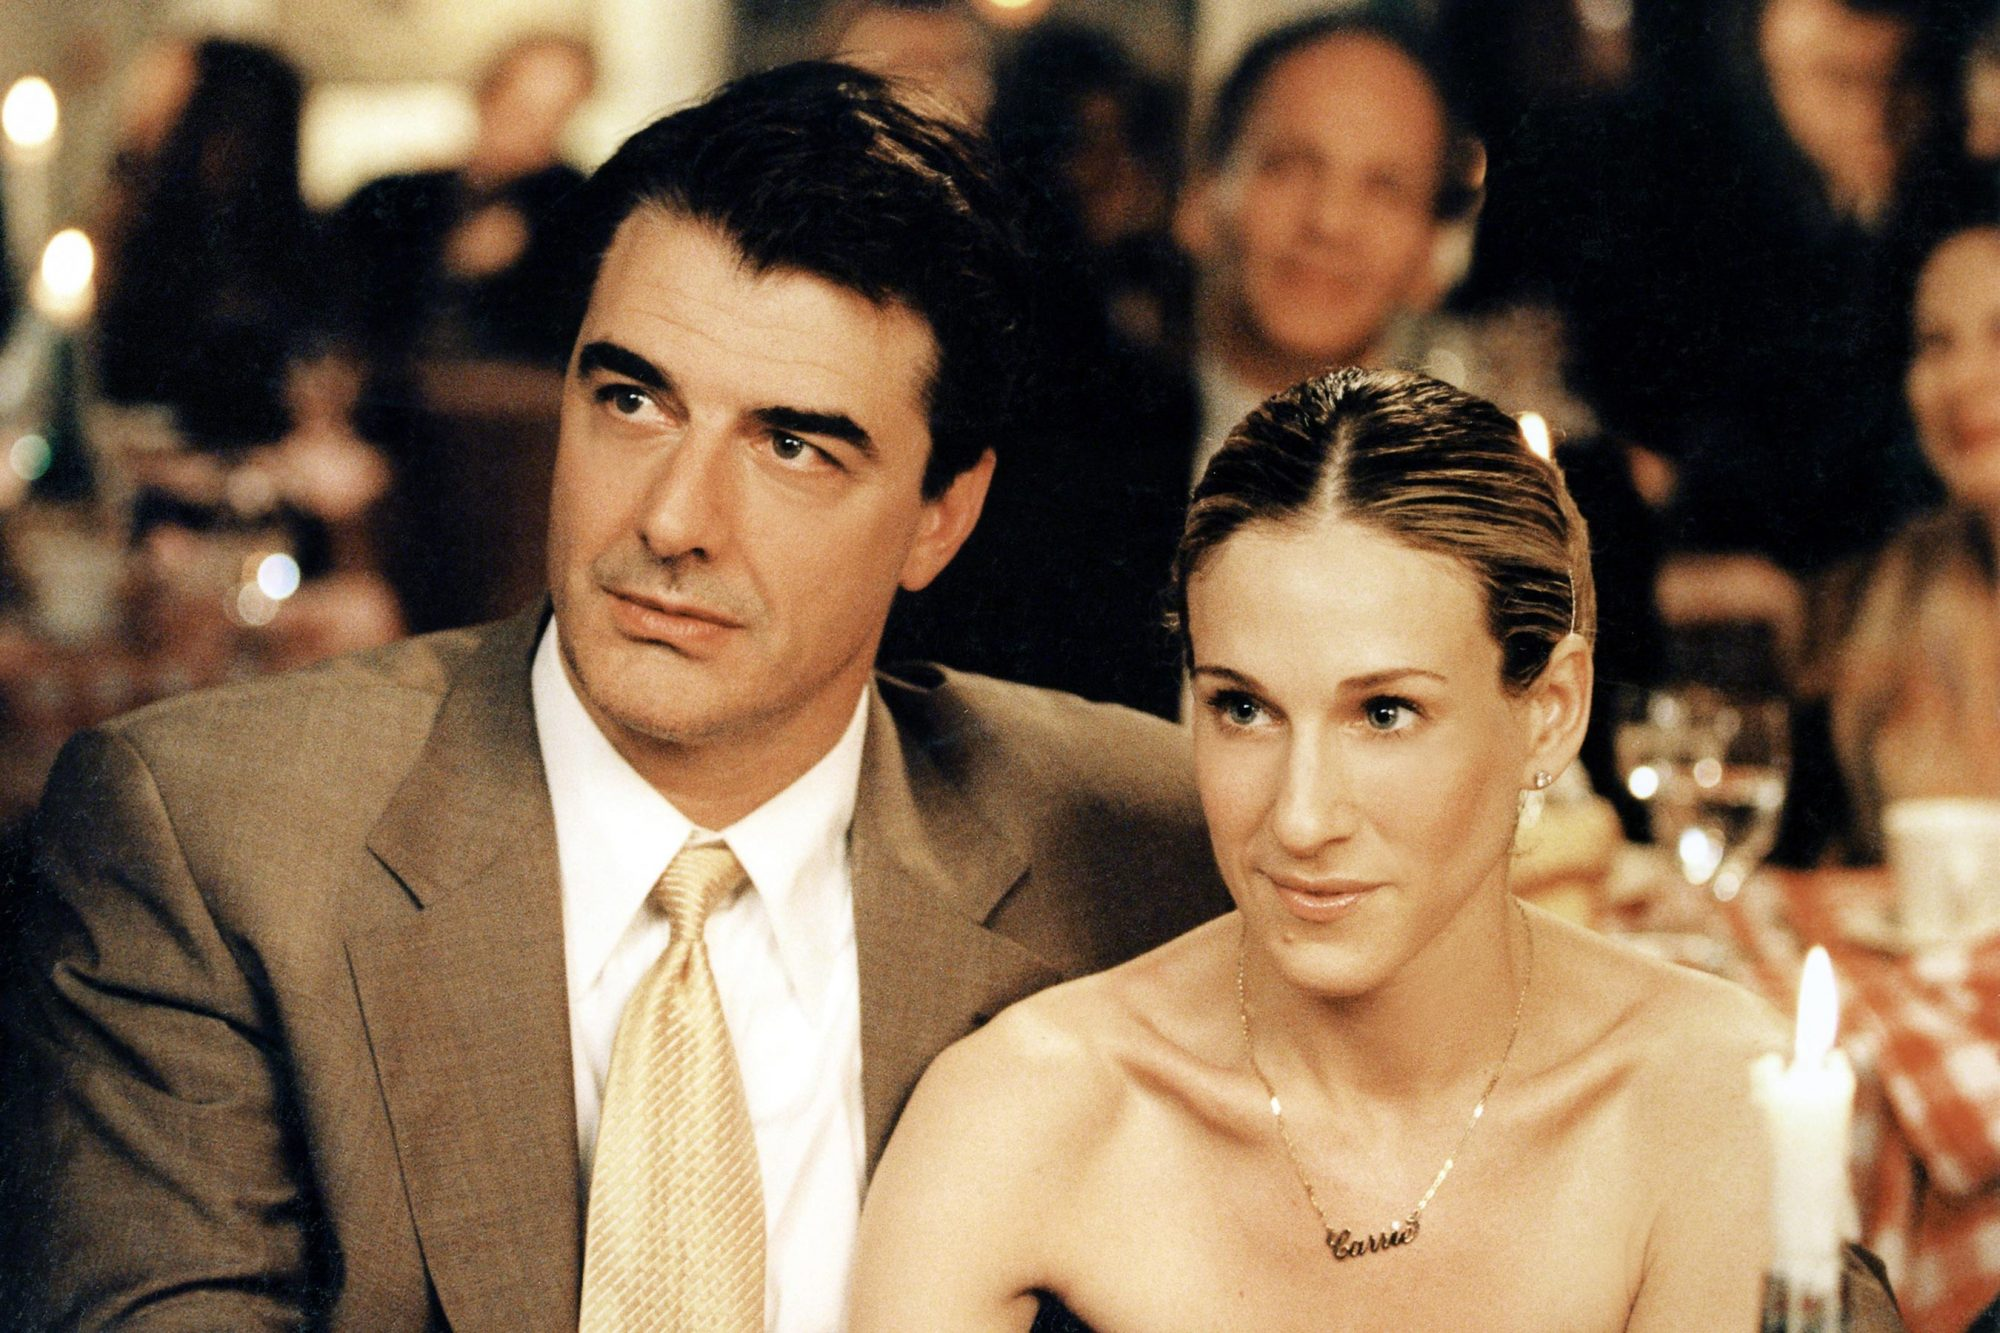 SEX AND THE CITY, (Season 2), Chris Noth, Sarah Jessica Parker, 1998-2004, u00A9 HBO / Courtesy: Everett